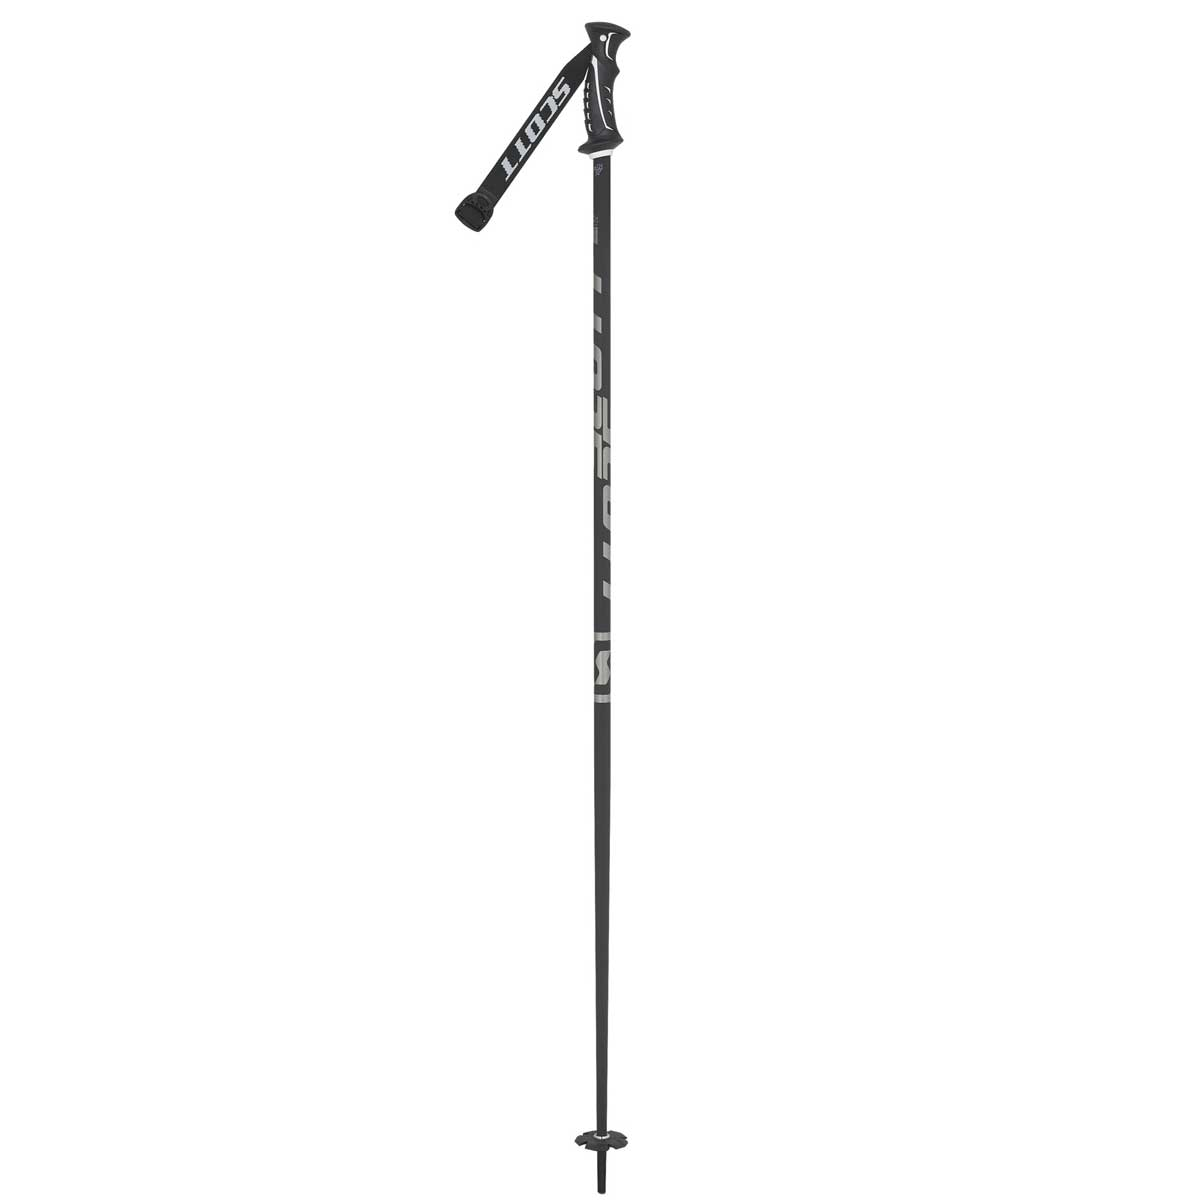 Scott Decree pole in Black